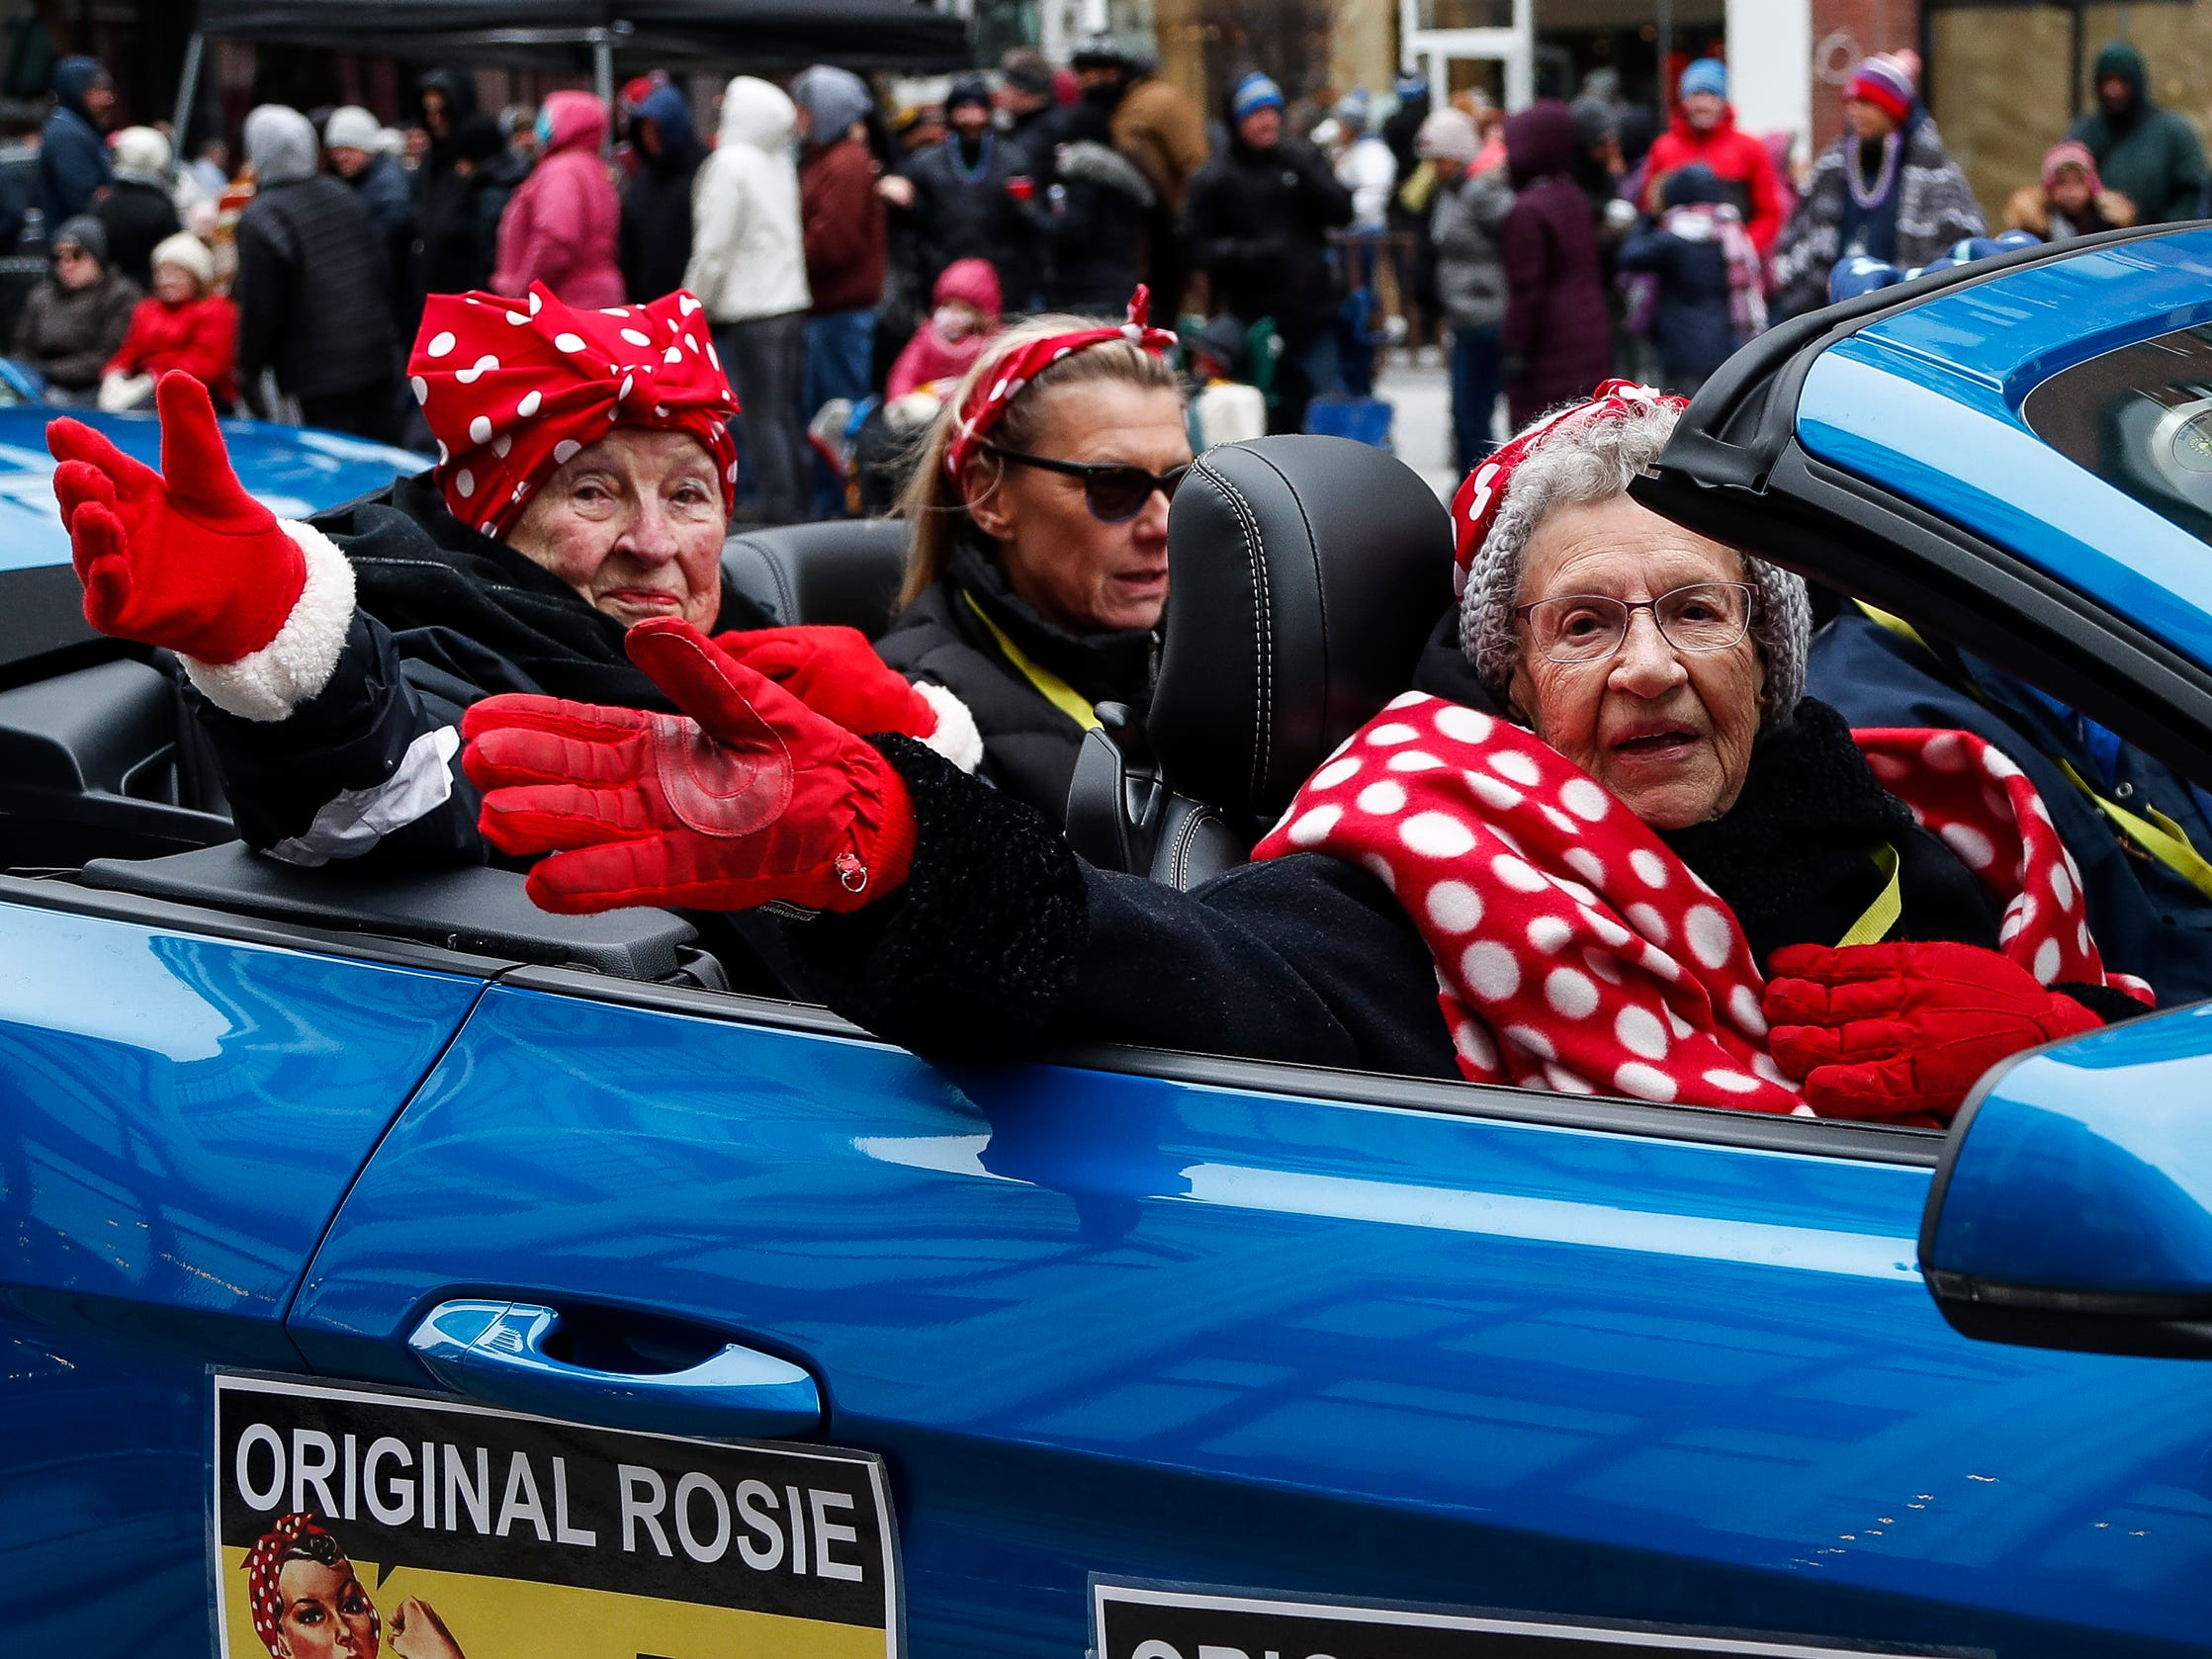 Original Rosie the Riveters Flo McCarty, left, and Ethel Ciszewicz are honored during the 92nd America's Thanksgiving Day Parade in Detroit, Thursday, Nov. 22, 2018.